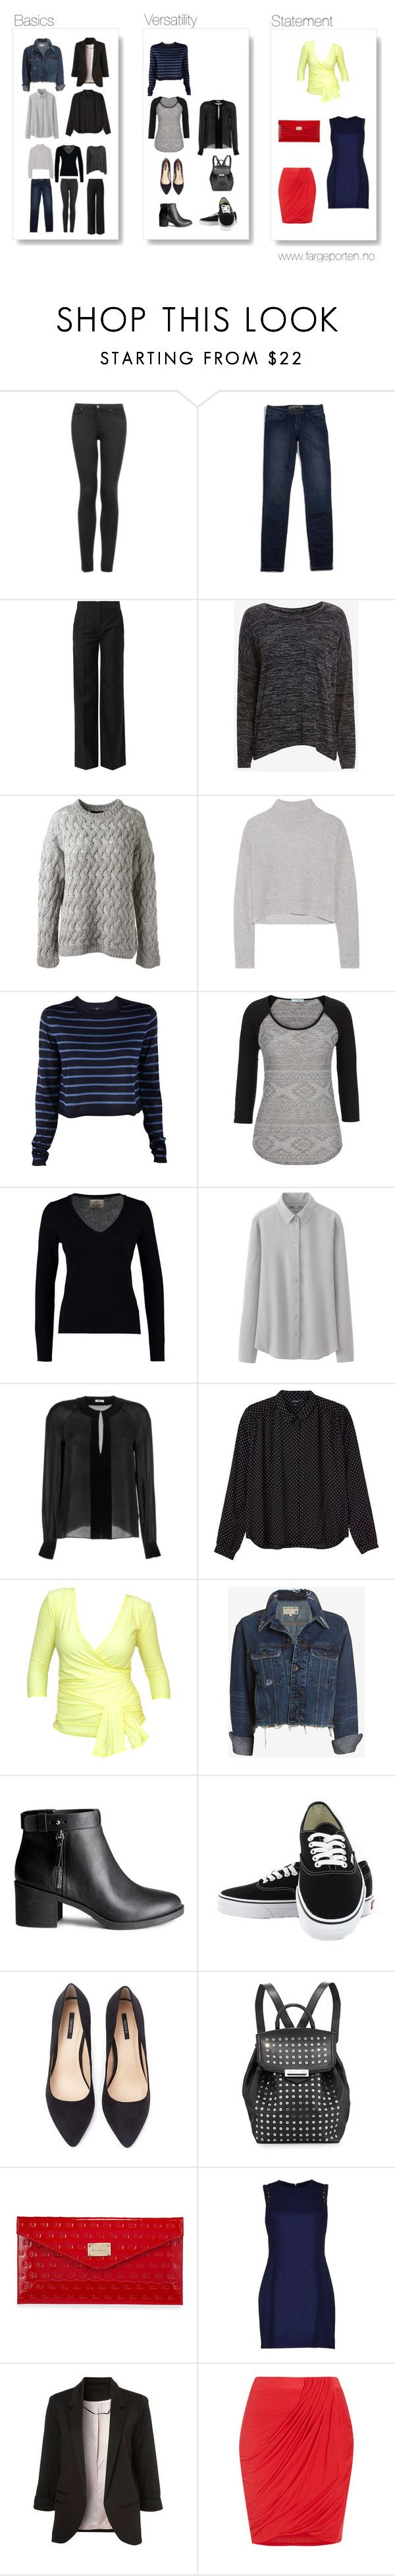 """Basic capsule wardrobe"" by fargeporten ❤ liked on Polyvore featuring Topshop, GUESS, Balenciaga, rag & bone/JEAN, The Row, Line, TIBI, maurices, FTC and Uniqlo"